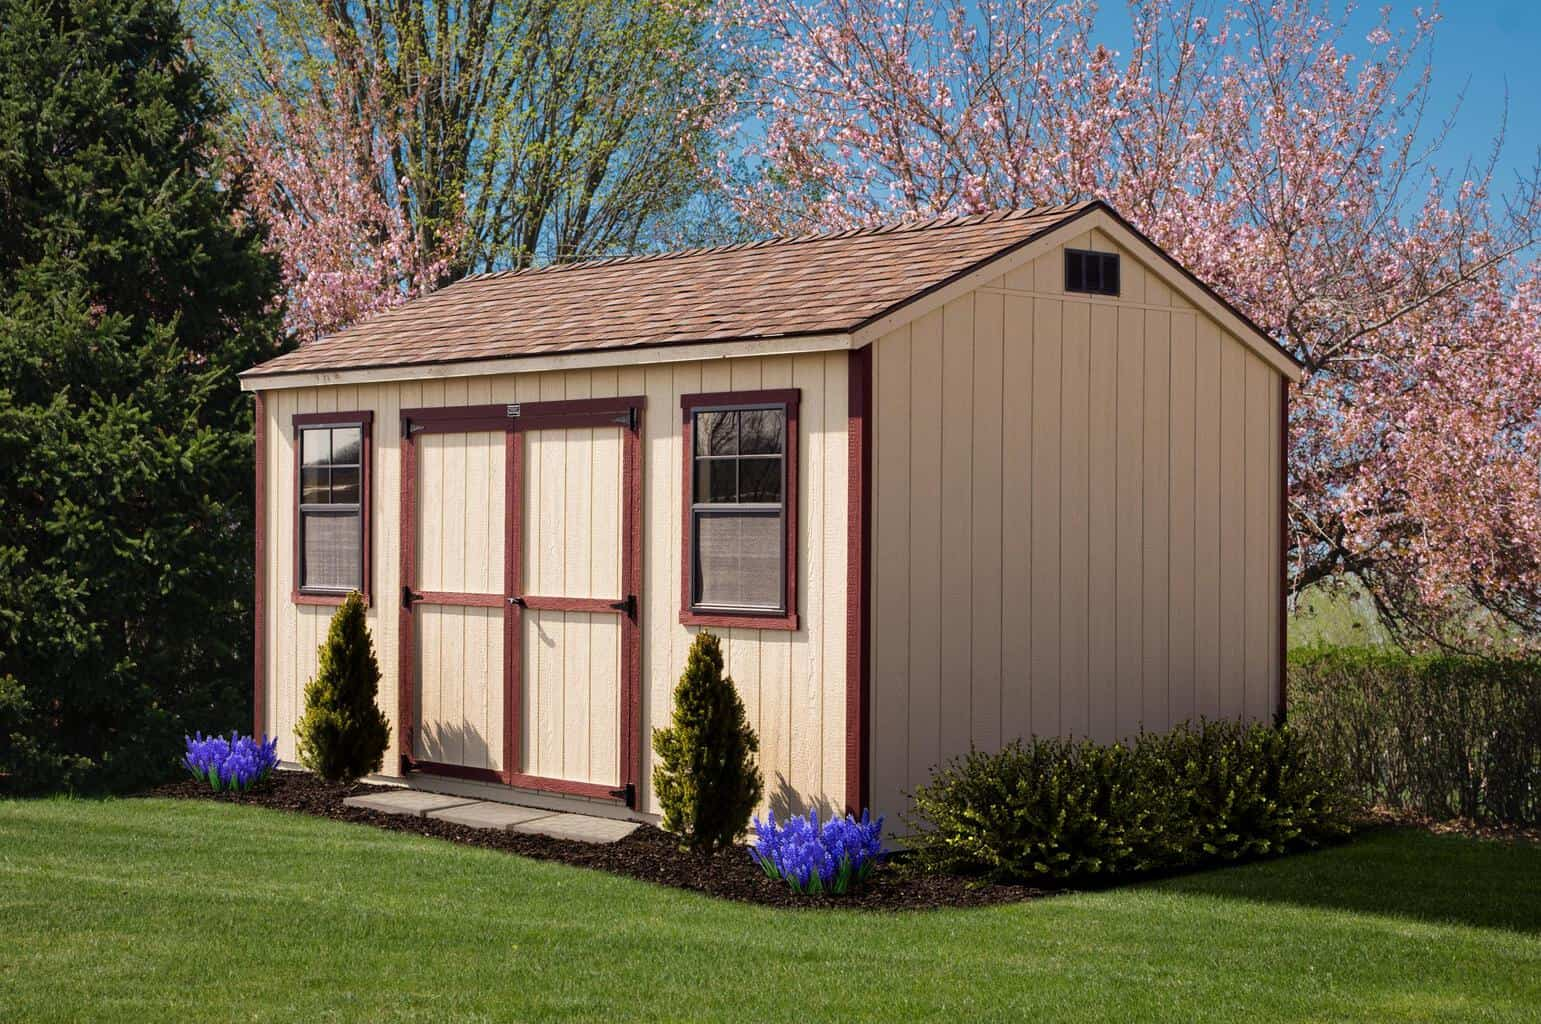 Lakeside Cabins and Sheds News